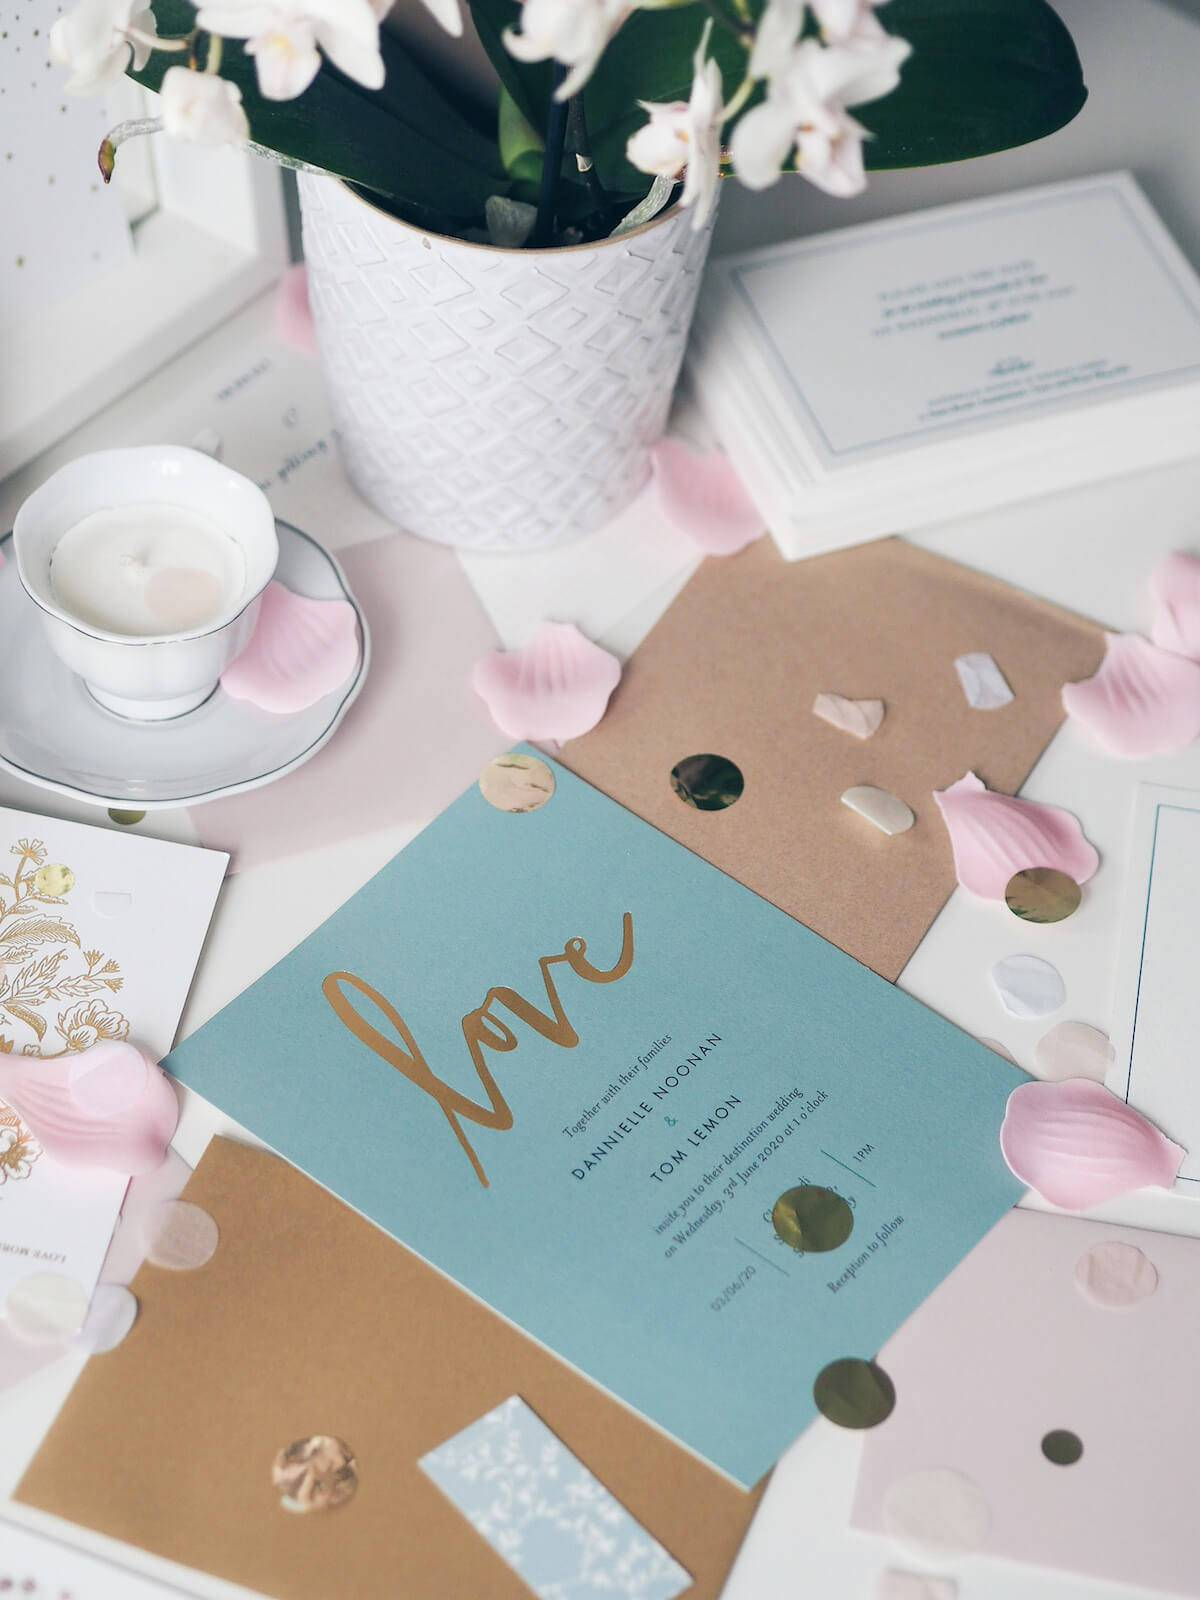 Destination Wedding Review.Destination Wedding Diaries Creating Our Invitations While I M Young